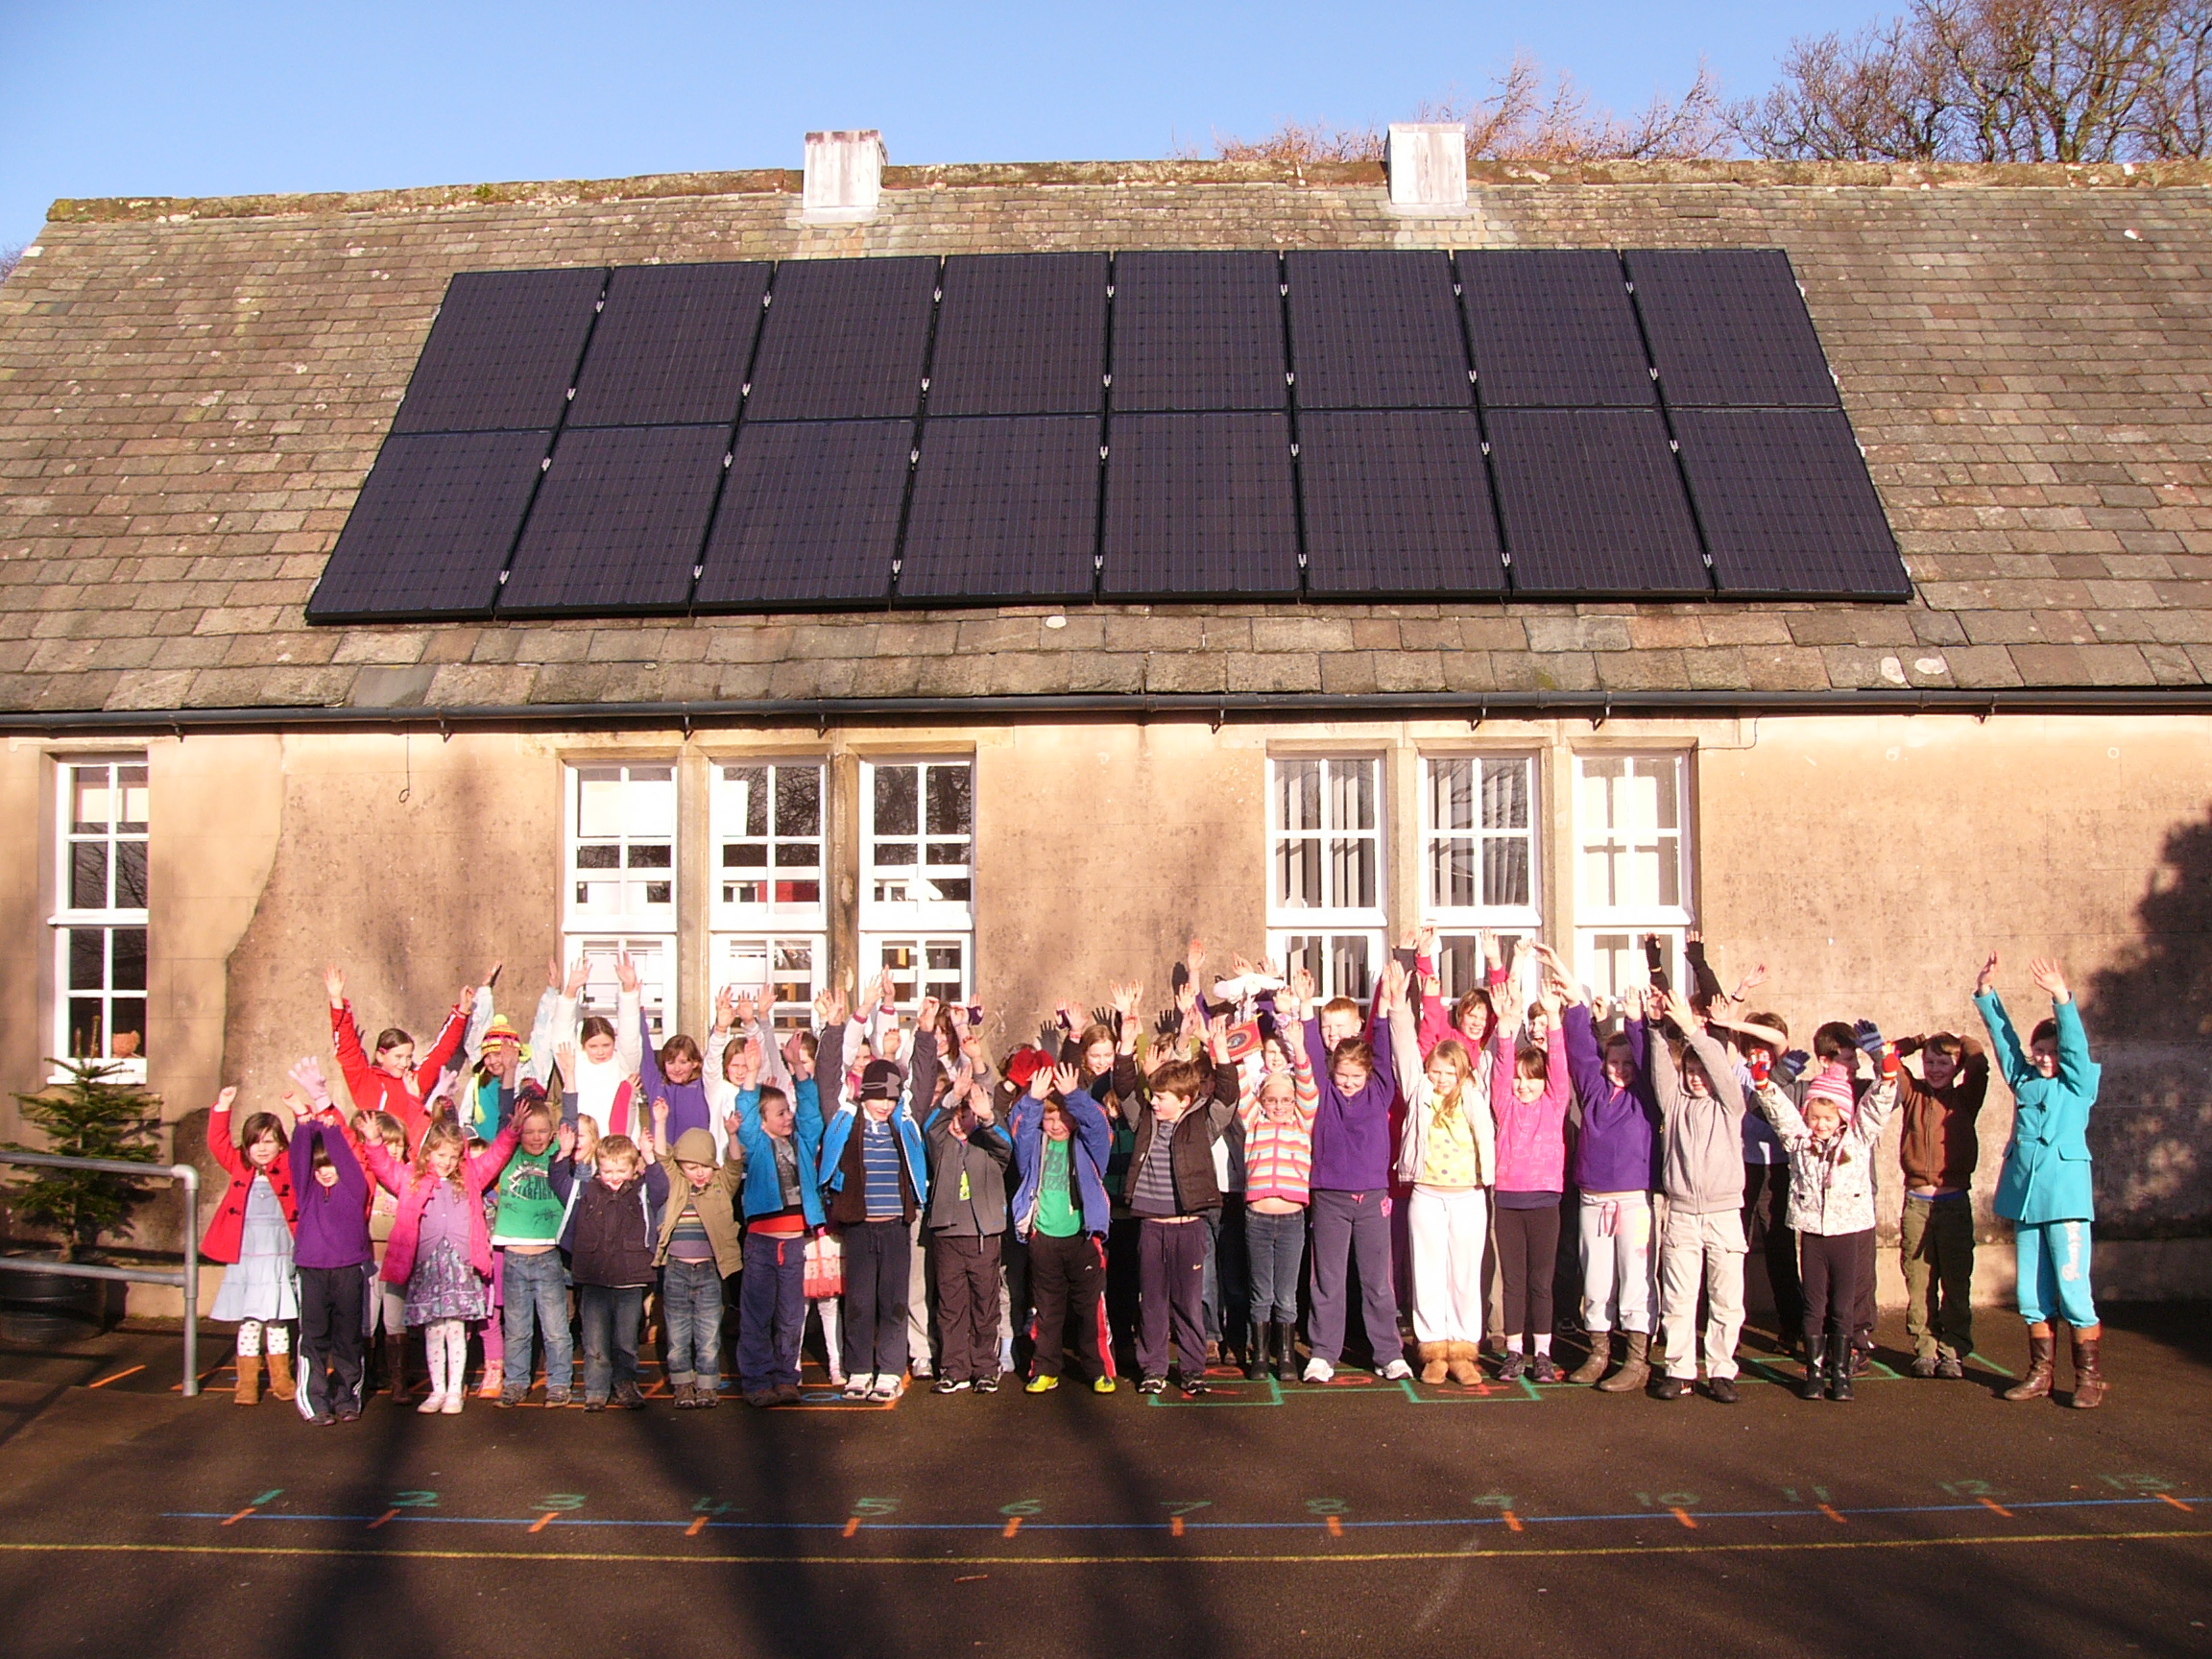 Community PV Installation Lorton Svhool Cumbria